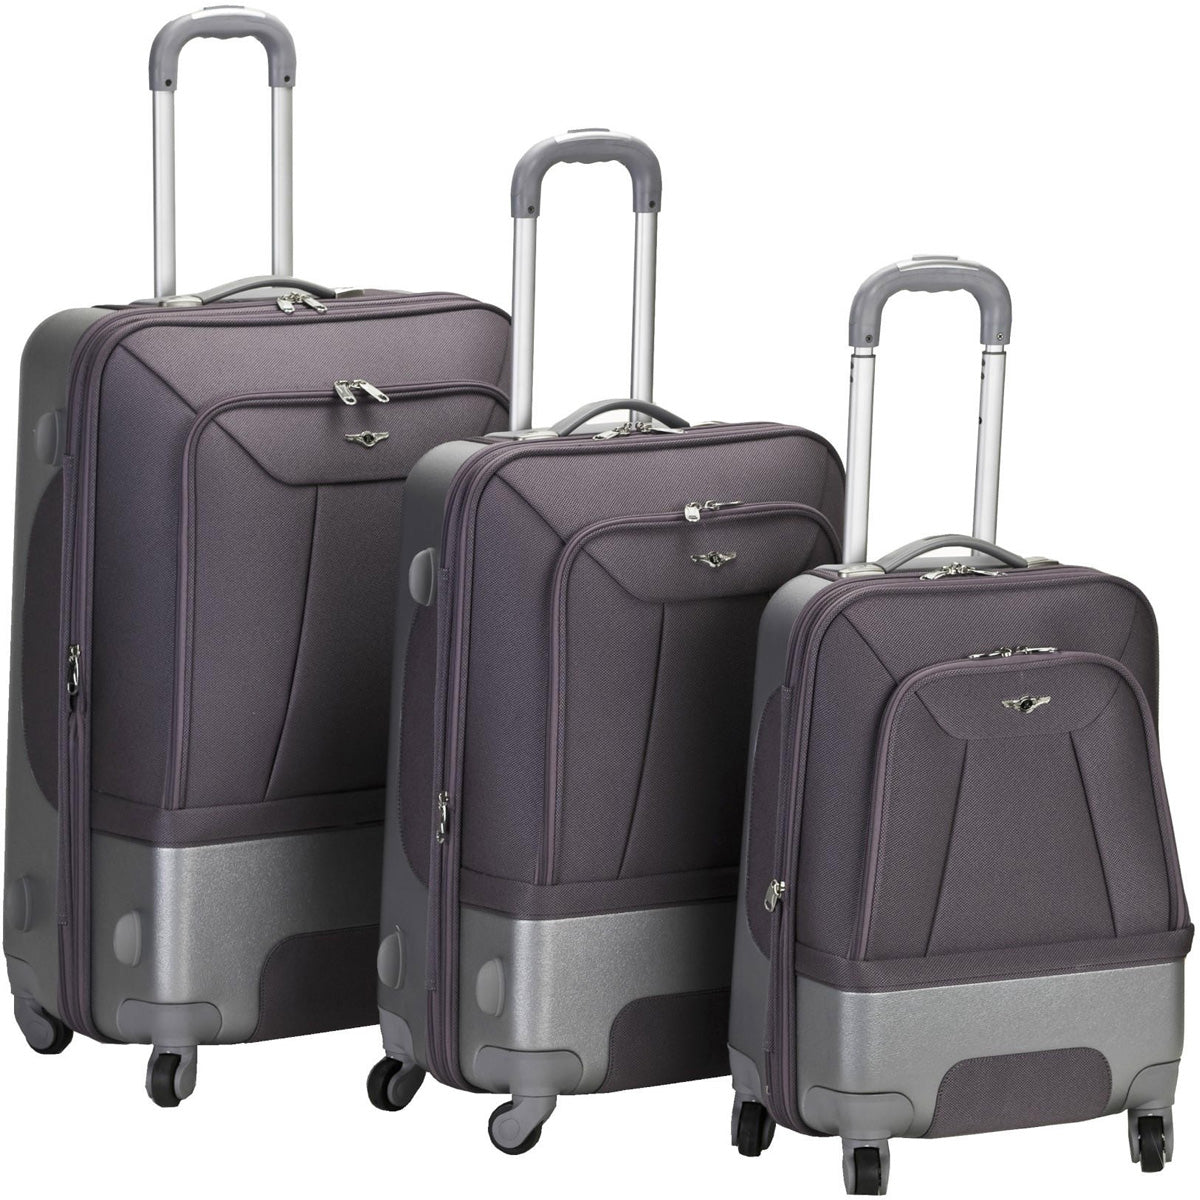 Rockland Luggage Rome Hybrid 3 Piece Spinner Luggage Set